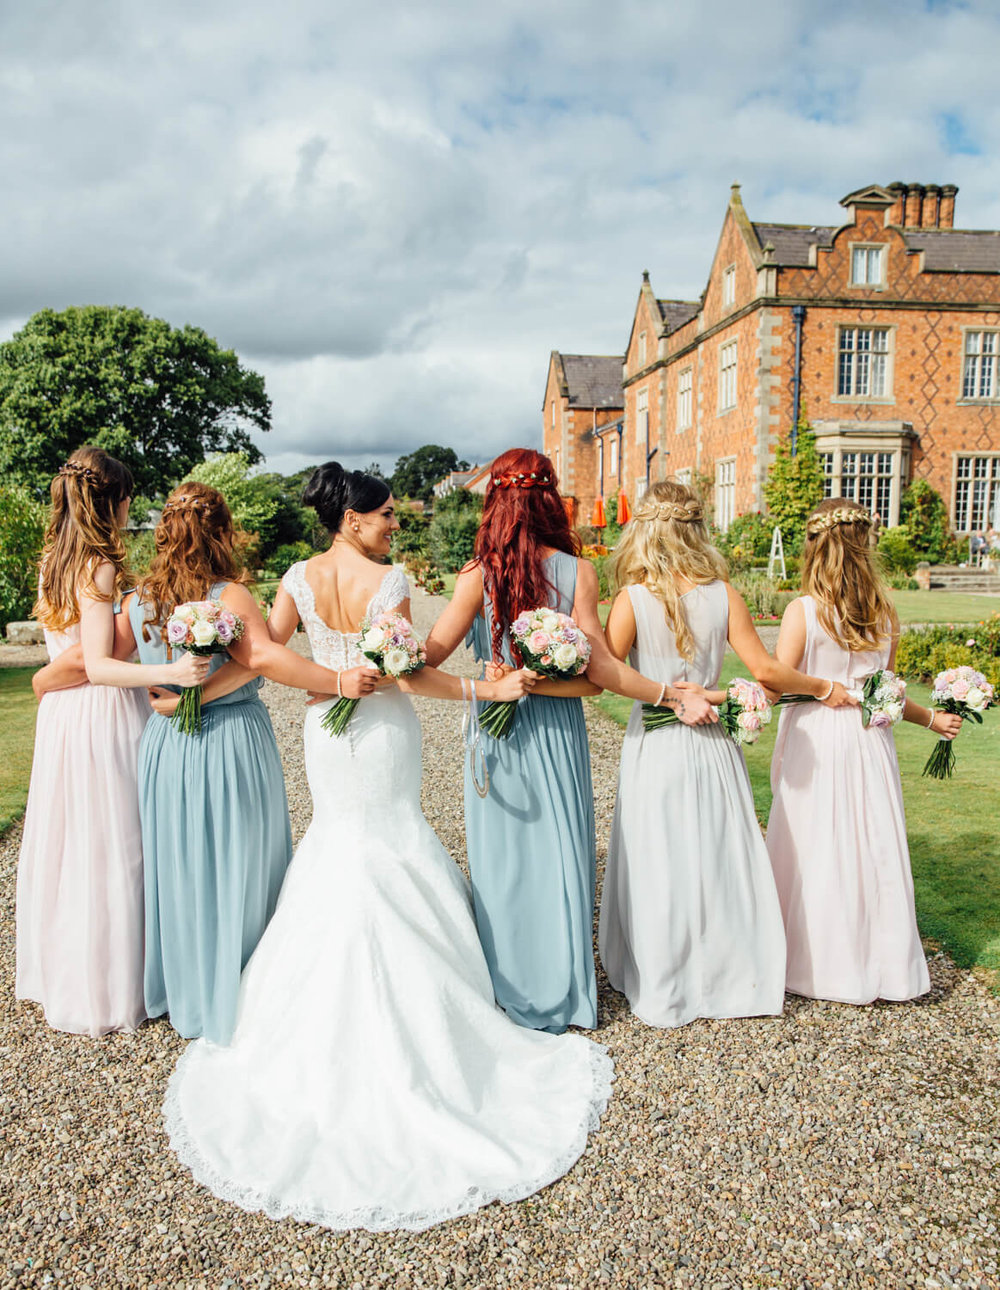 bride and bridesmaids with back to camera linking arms